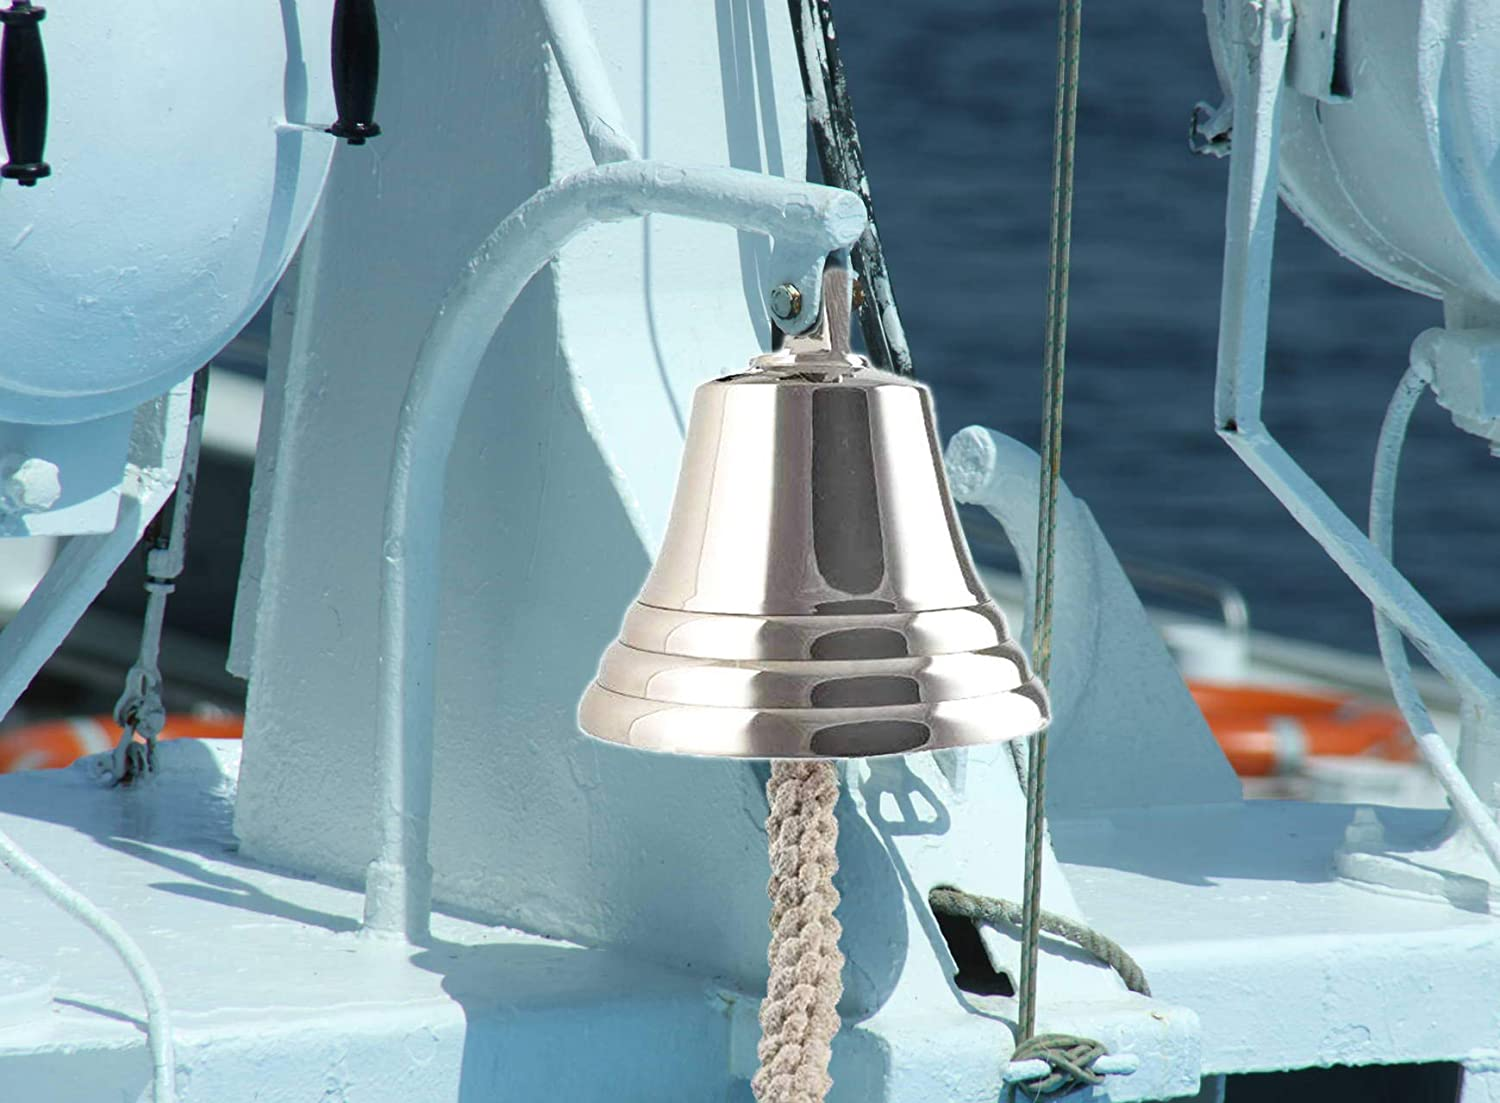 Lat/ón S/ólido antique bell home decoration for reception ARSUK nautical bell 7,5cm on boat for hanging on the wall 3 solid brass for the navy for dinner at school